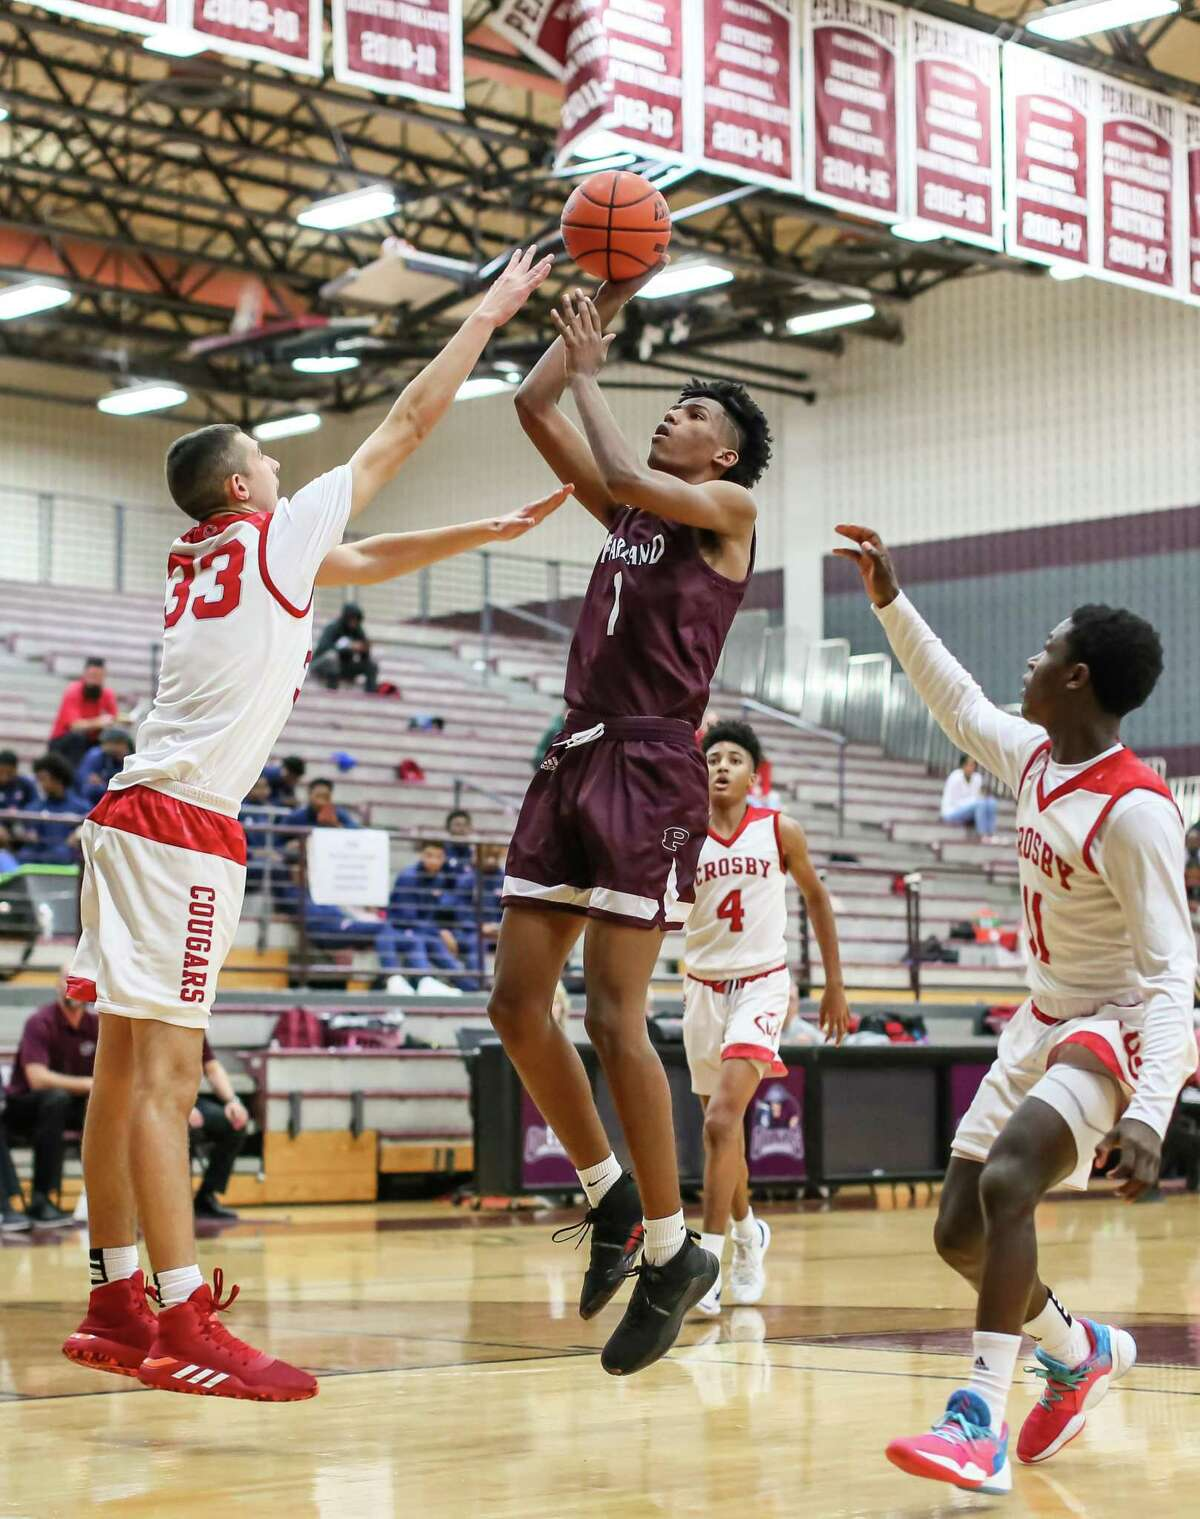 Pearland post Robel Desta drives to the basket against Crosby in the Pearland ISD Basketball Classic.